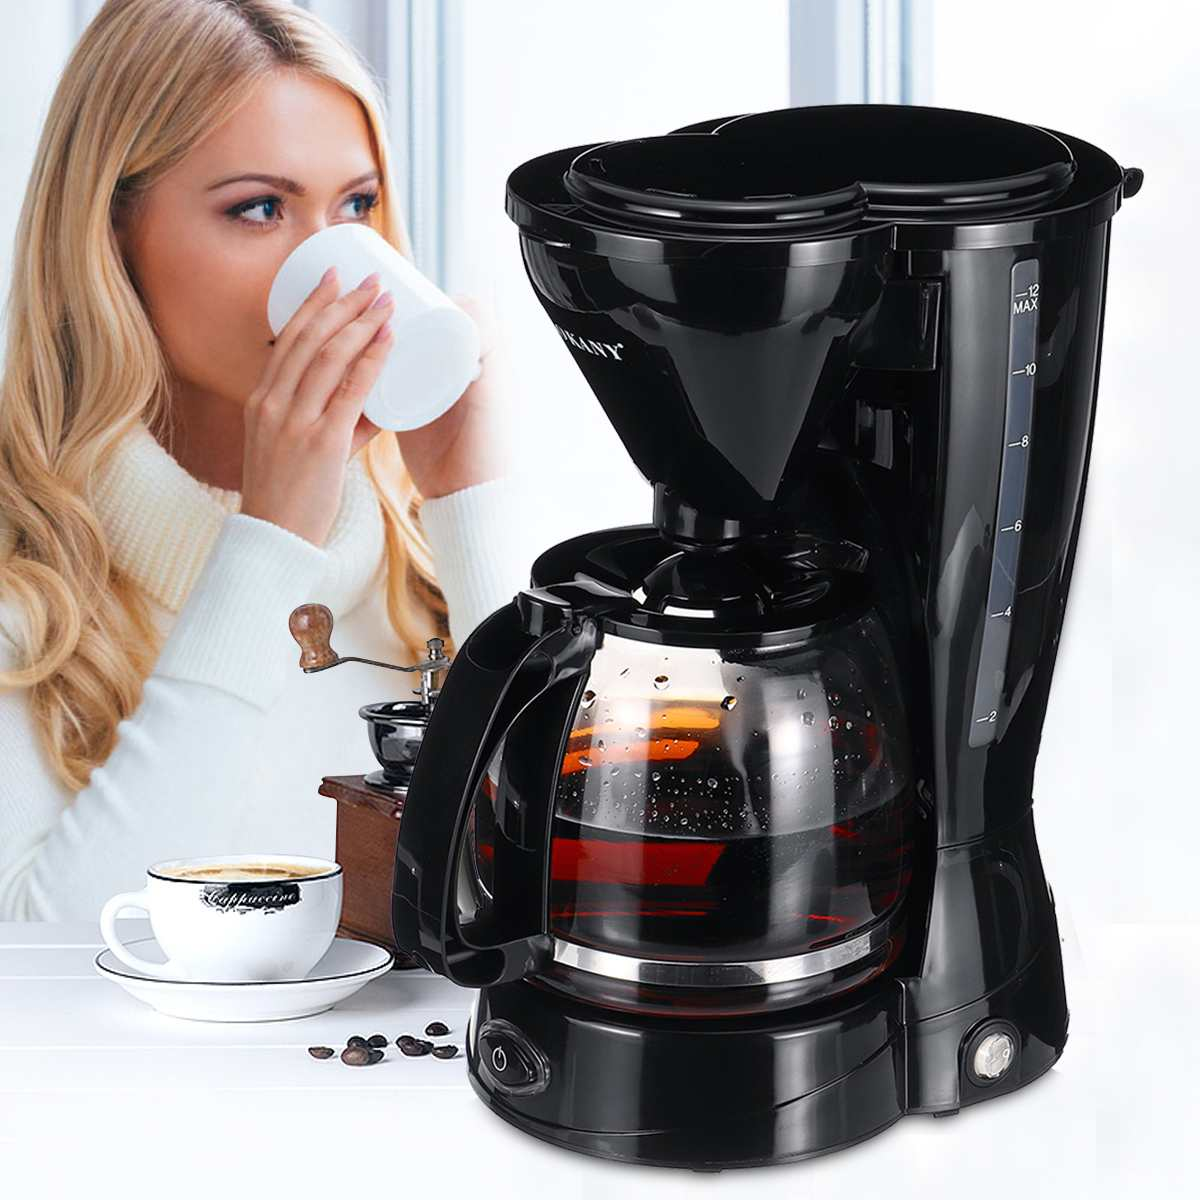 Portable Coffee Maker 10-12 Cups Electric Drip Espresso Coffee Maker 220V Household Tea Pot Cafe Machine Instant Heat Coffee Pot